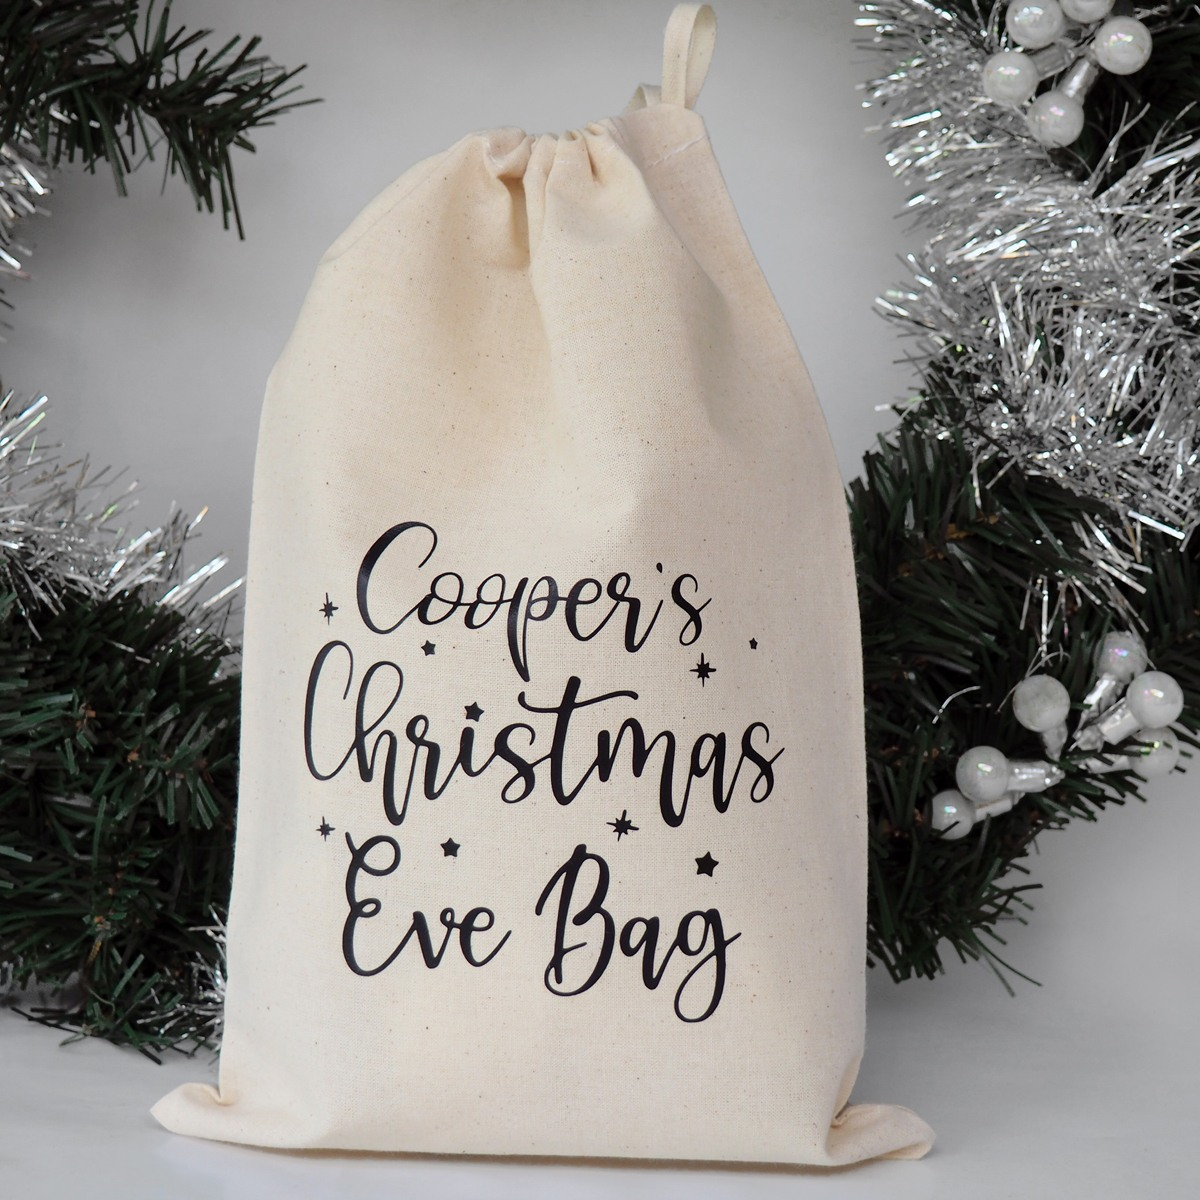 Part of Bumblebee Creative's Christmas range; a personalised calico Christmas Eve bag / Santa sack